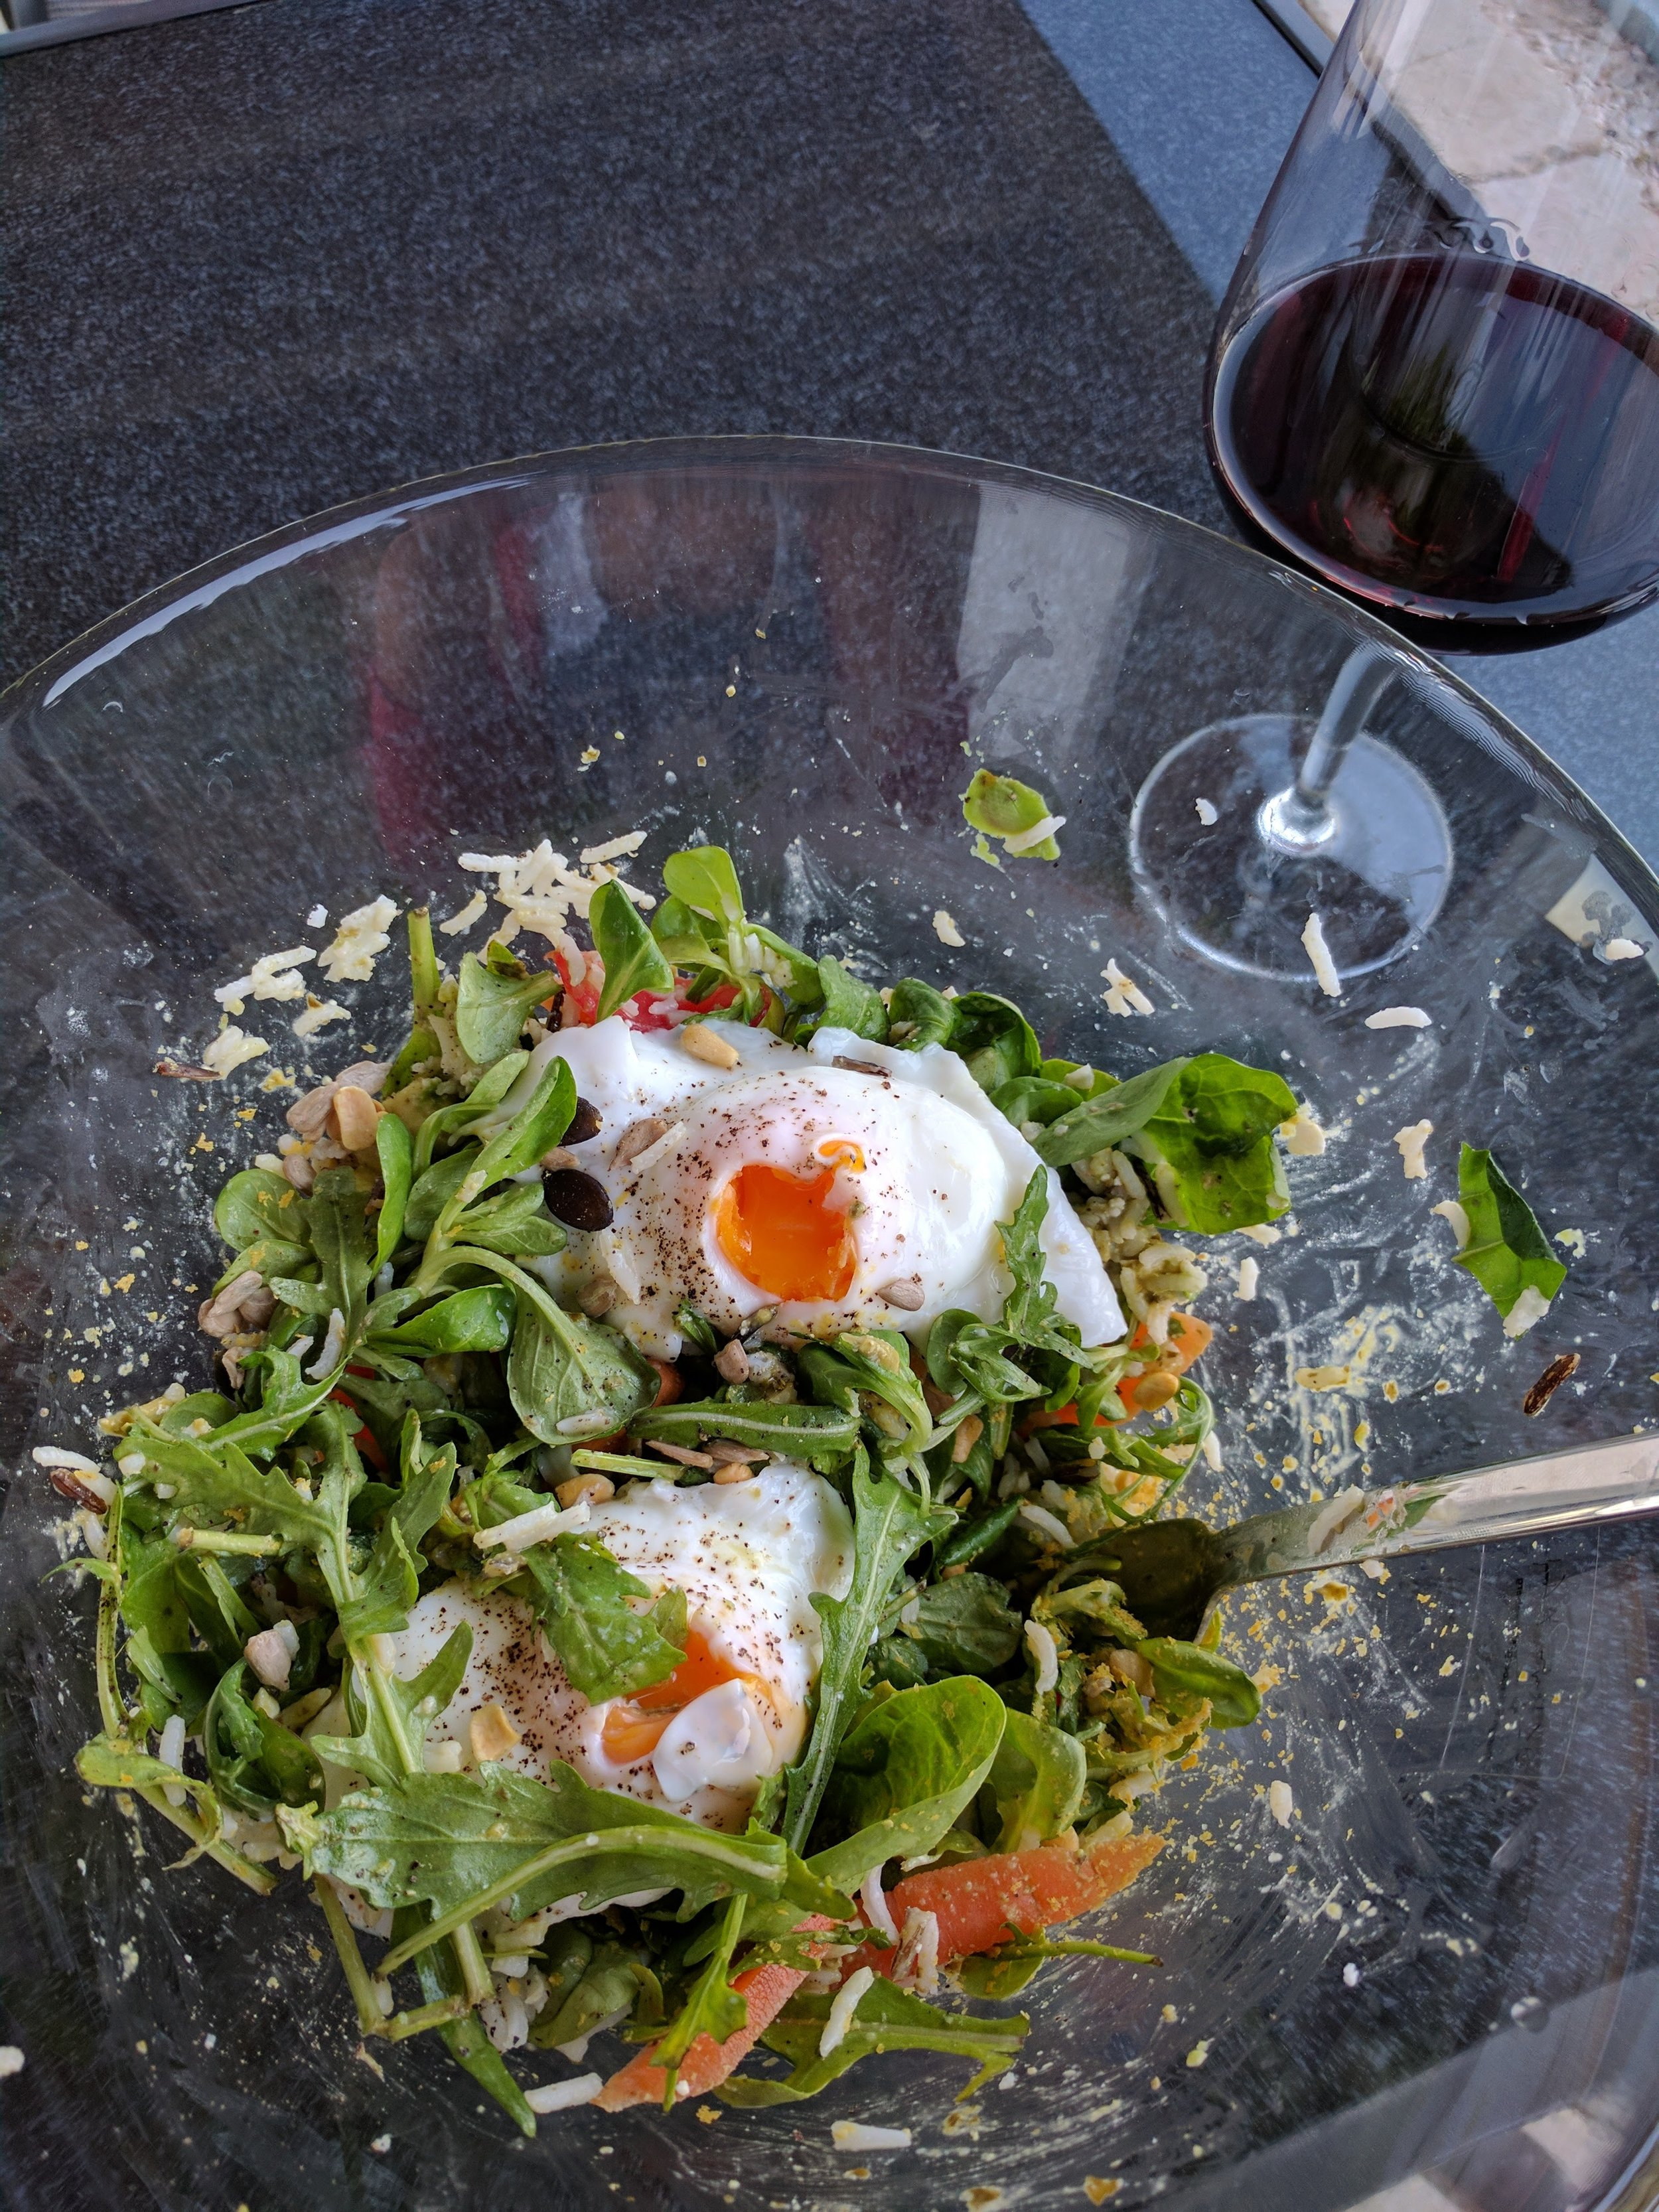 Dinner by Chloe - Start with rice, make a tasty dressing, throw in some greens, some nuts and/or seeds, a cheese, and finish with some eggs on top. And then add some wine.